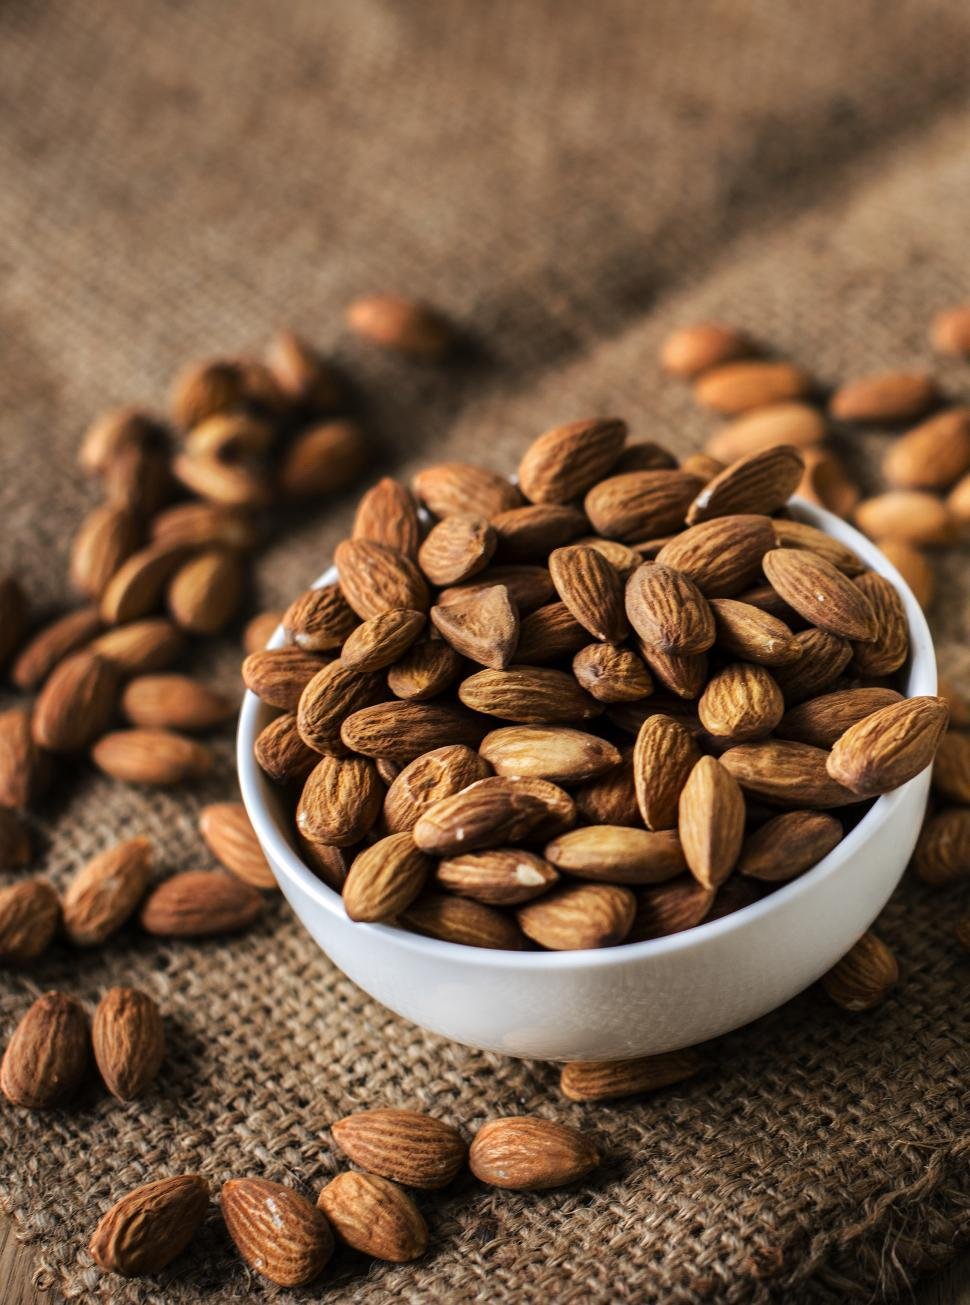 Download Free Stock HD Photo of Close up of a bowl full of almonds Online